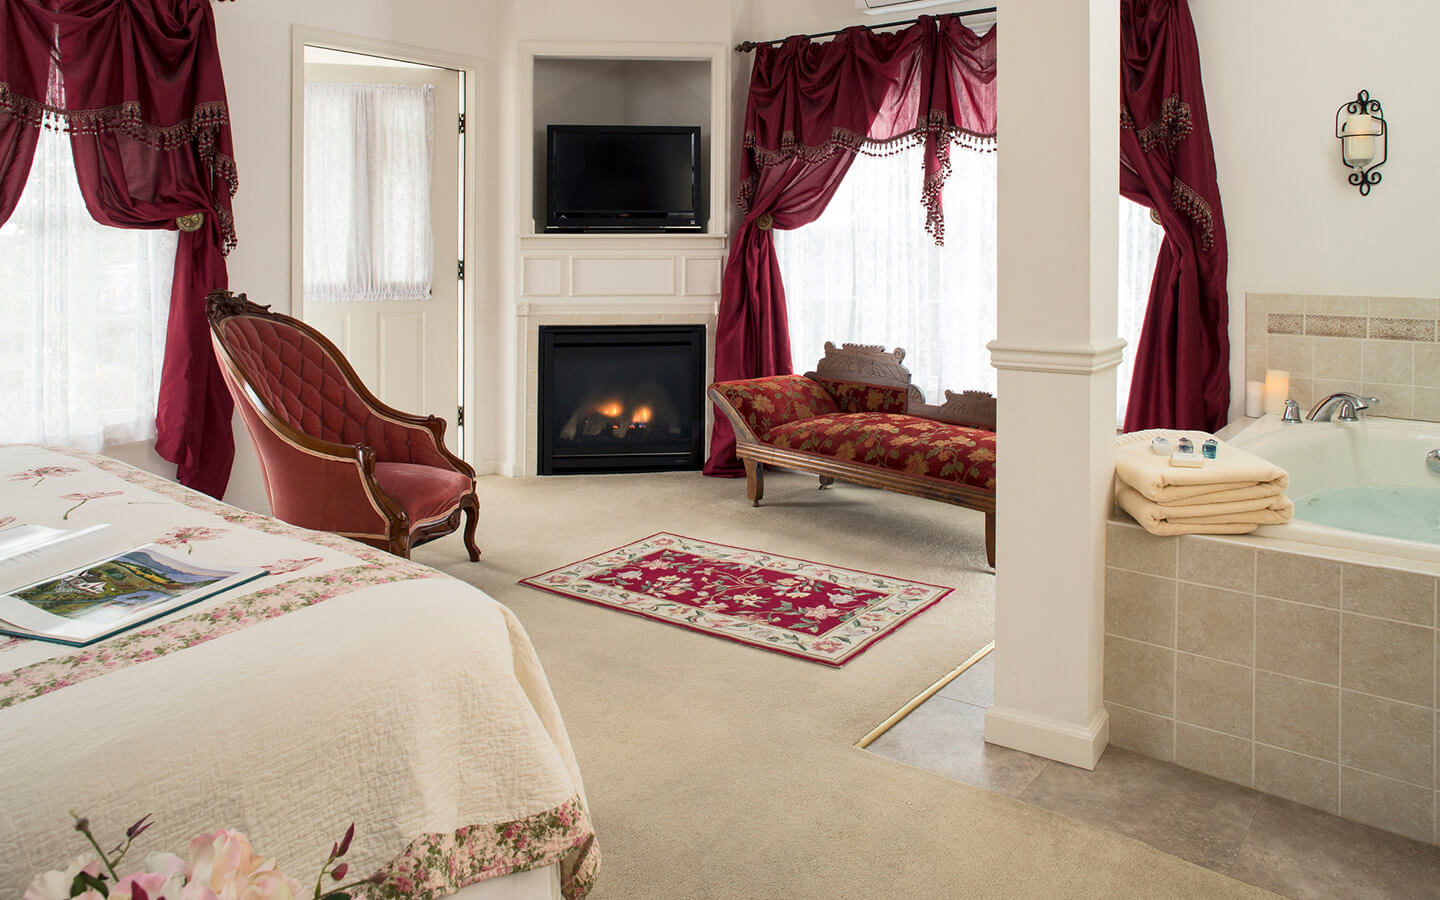 Our Landar Room is perfect for a romantic getaway in Hershey